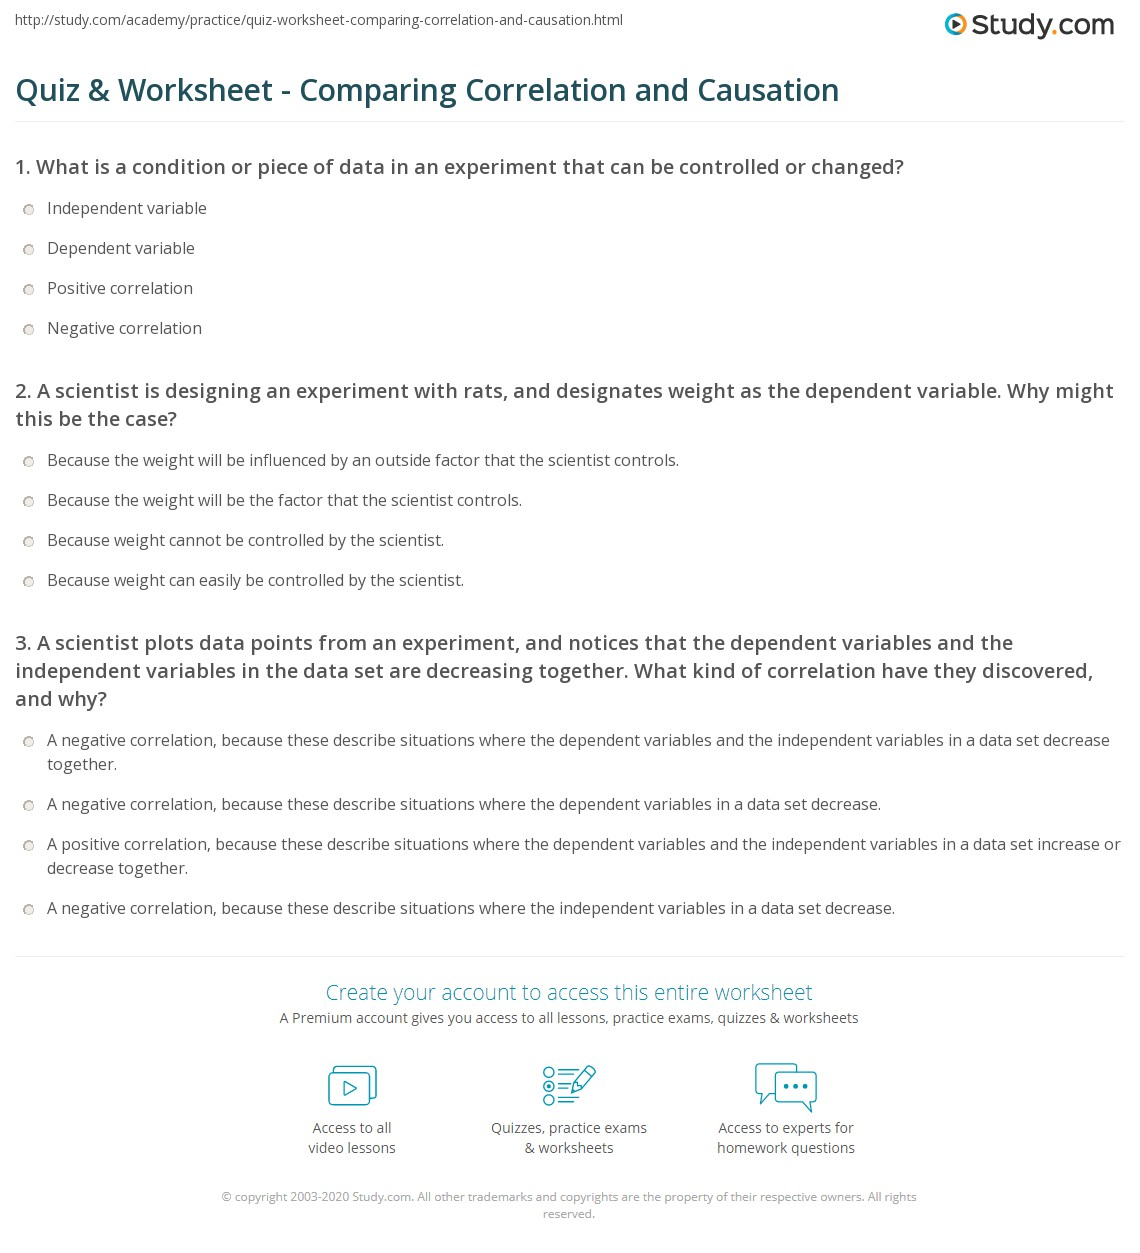 Aldiablosus  Gorgeous Quiz Amp Worksheet  Comparing Correlation And Causation  Studycom With Goodlooking Print Correlation Vs Causation Differences Amp Definition Worksheet With Adorable Pre School Worksheet Also Binary Conversion Worksheet In Addition Science Skills Worksheet And Letter D Tracing Worksheets As Well As Subtracting Fractions From Whole Numbers Worksheet Additionally Finding Mean Worksheets From Studycom With Aldiablosus  Goodlooking Quiz Amp Worksheet  Comparing Correlation And Causation  Studycom With Adorable Print Correlation Vs Causation Differences Amp Definition Worksheet And Gorgeous Pre School Worksheet Also Binary Conversion Worksheet In Addition Science Skills Worksheet From Studycom